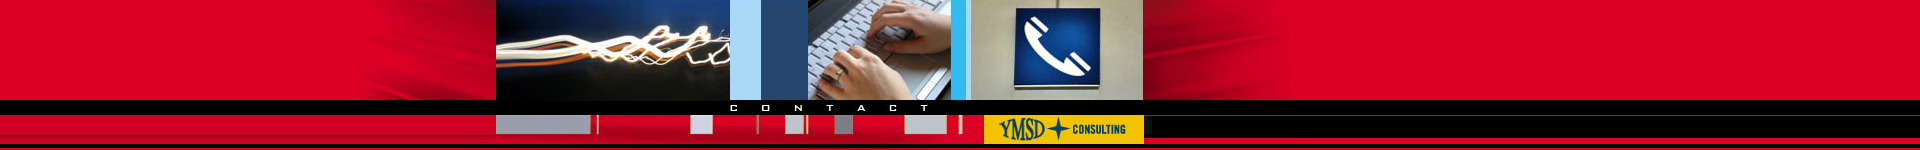 contact-photo-ymsd